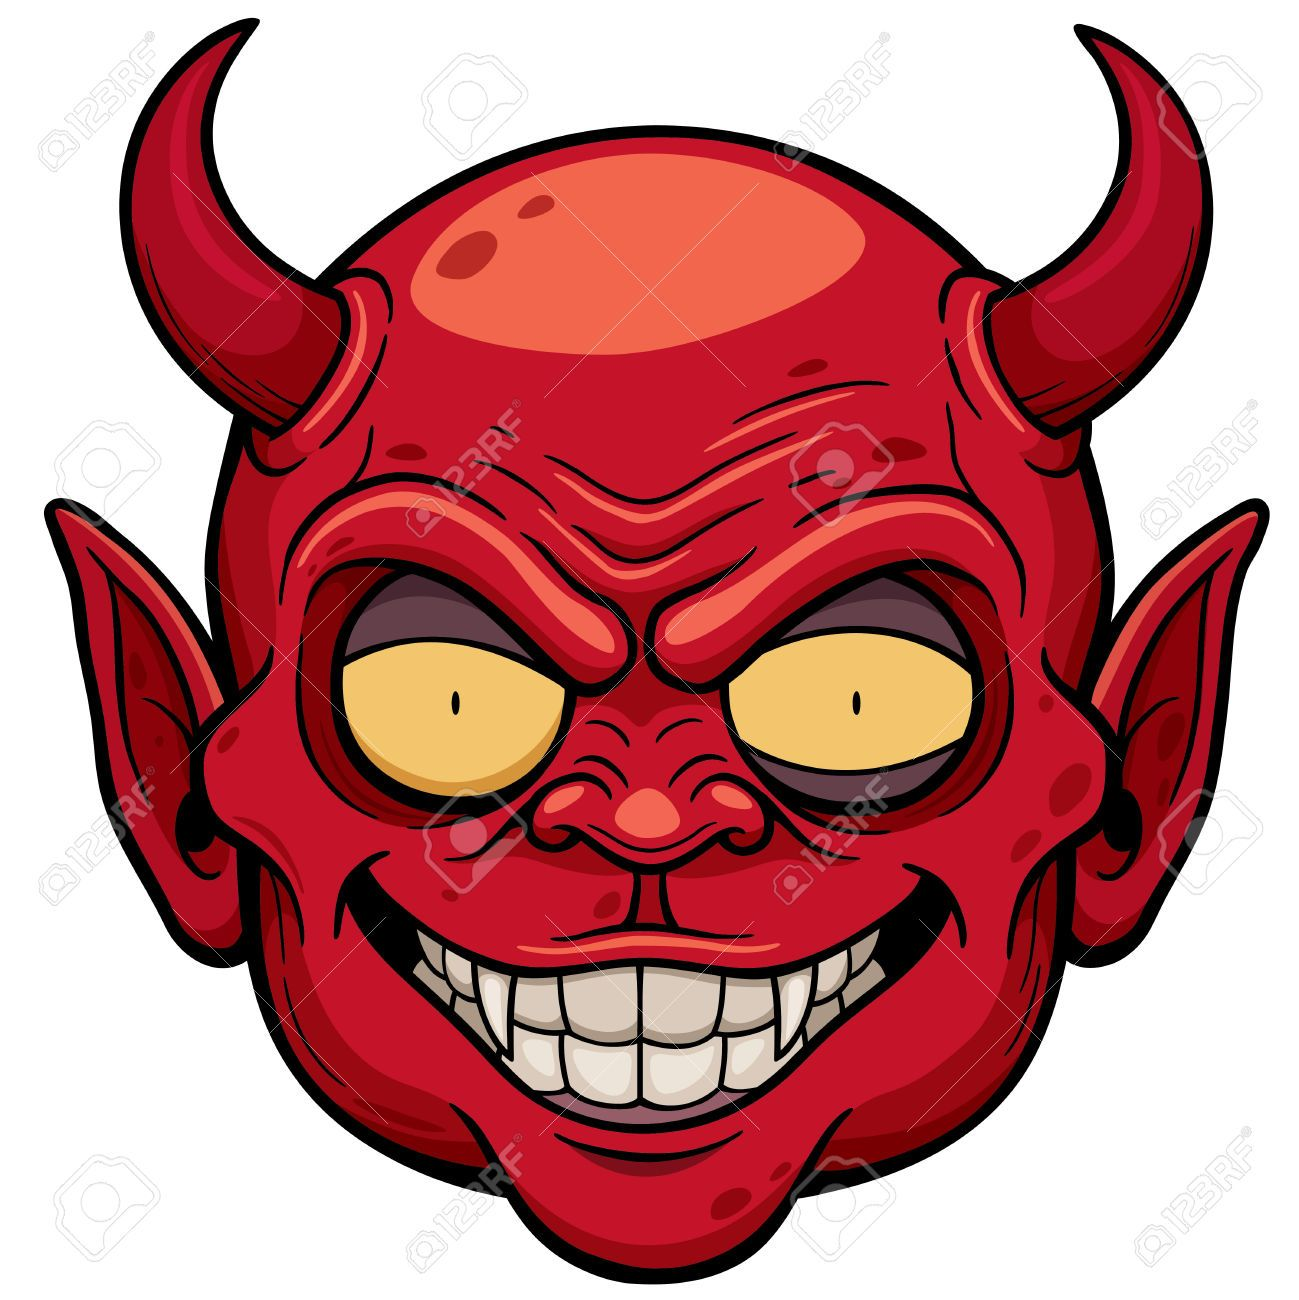 How To Draw A Devil Face Jpg 1299x1300 Cartoon Devil Face Drawings